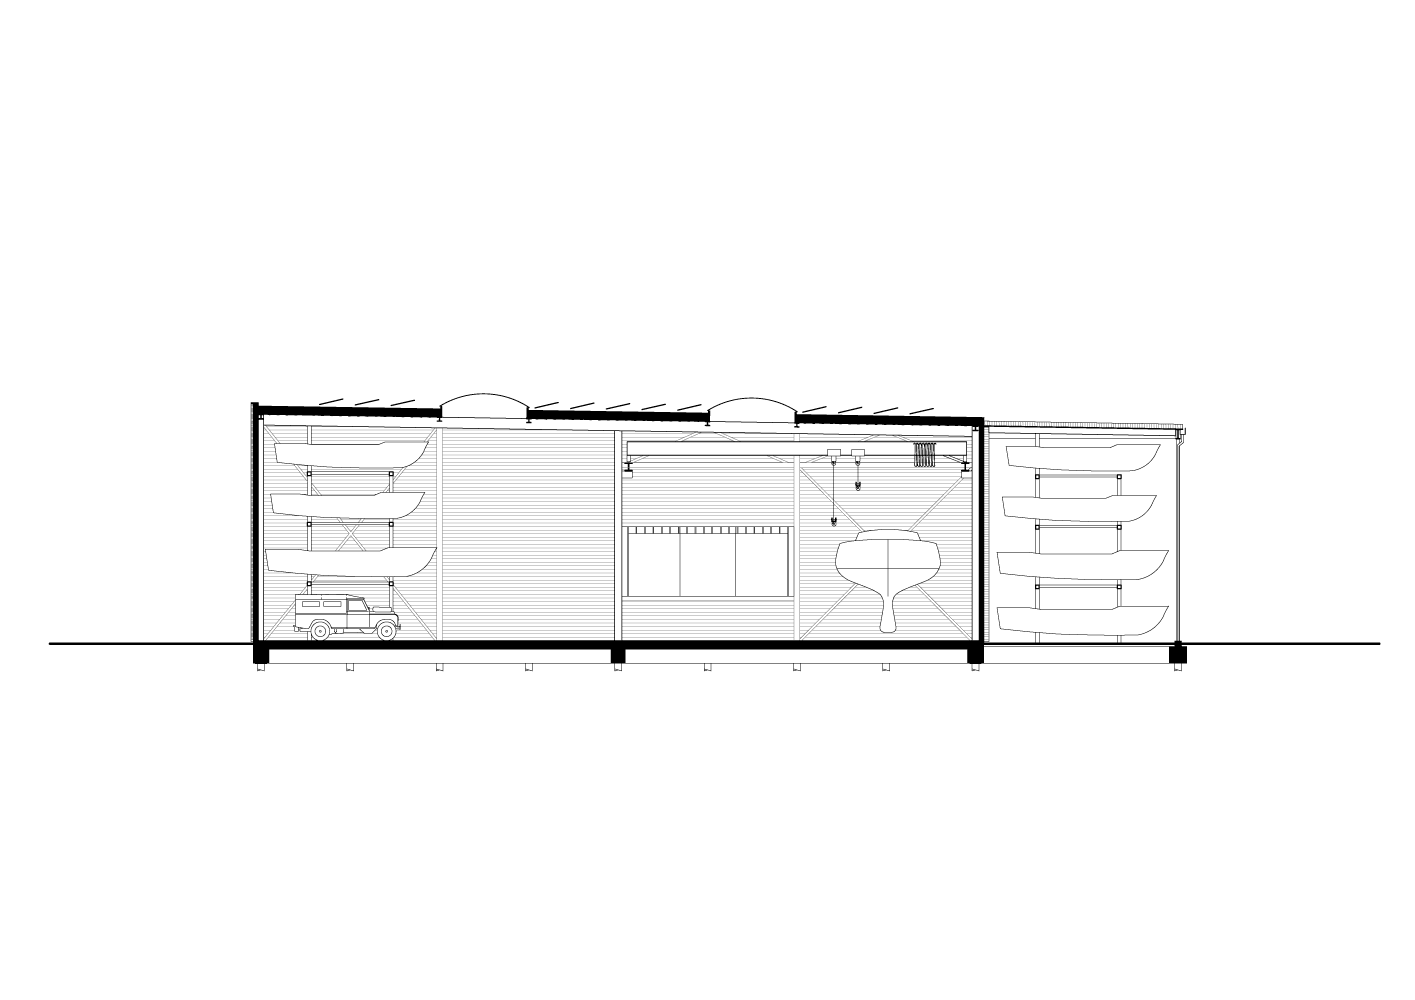 cross section drawing of Boat Hangar project by BETA architects Evert Klinkenberg Auguste Gus van Oppen